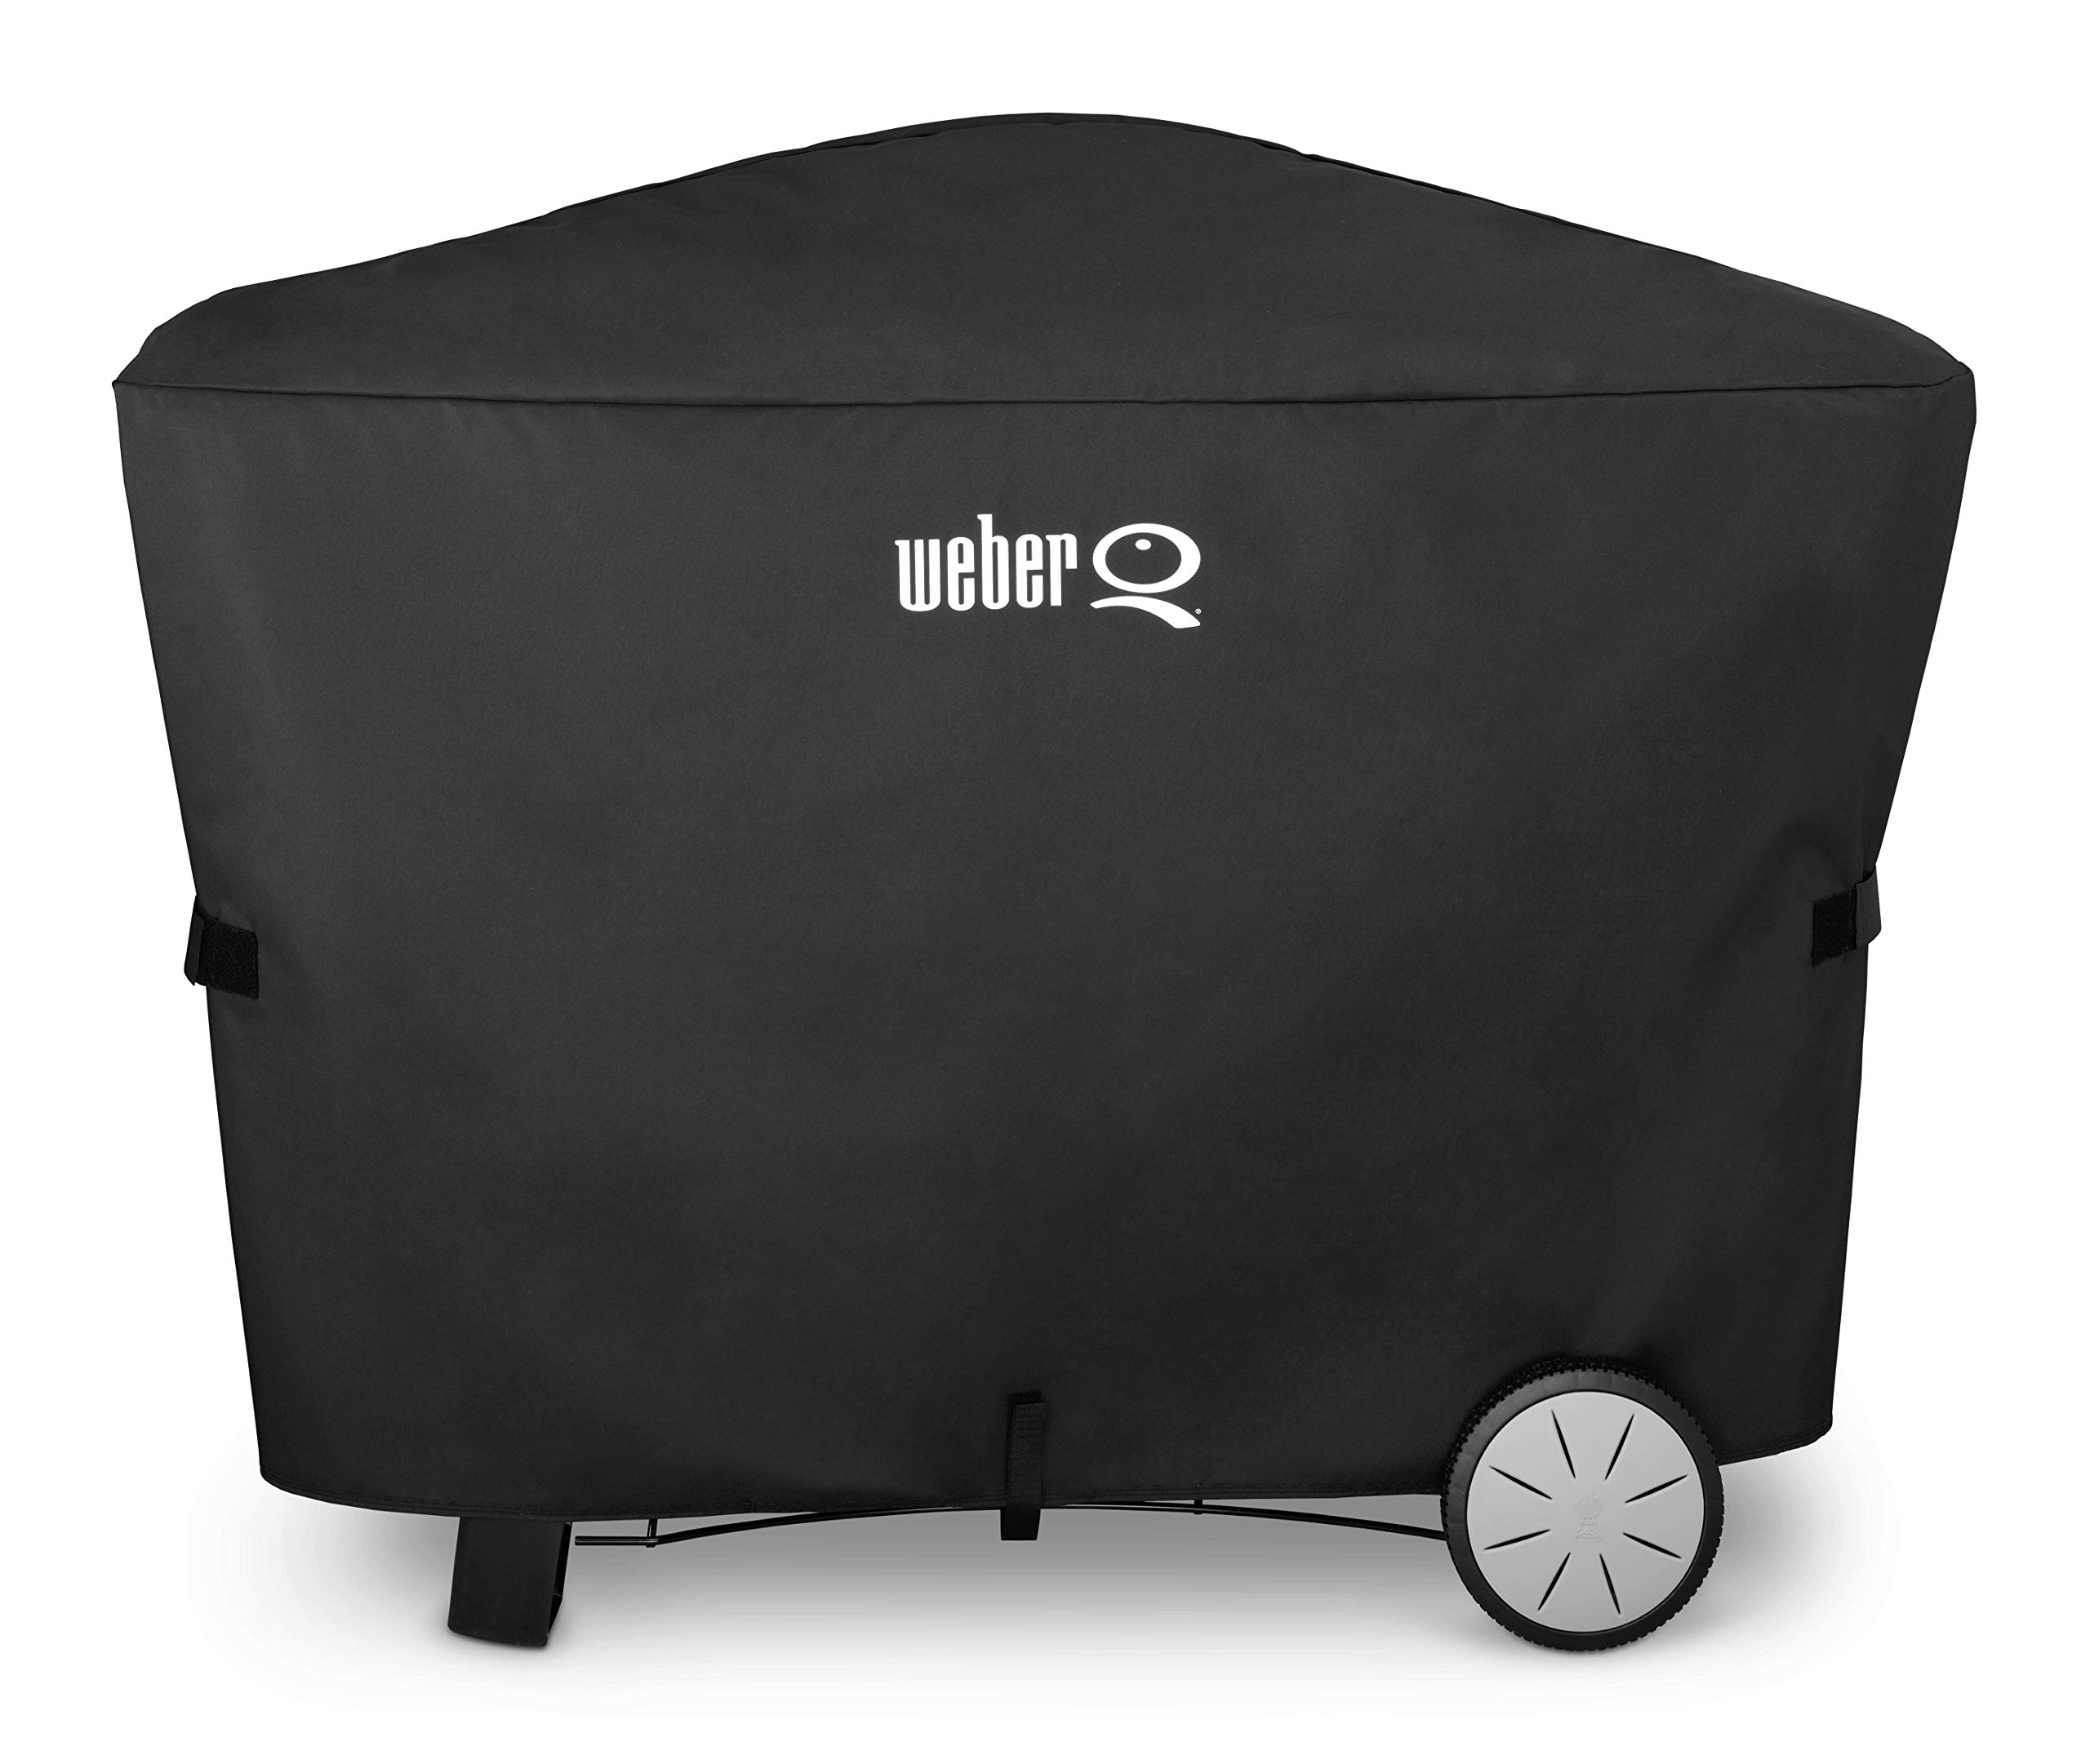 Weber 7112 Q 2000 and 3000 Series Grill Cover, 56.6 x 22 x 39.3 Inches by Weber